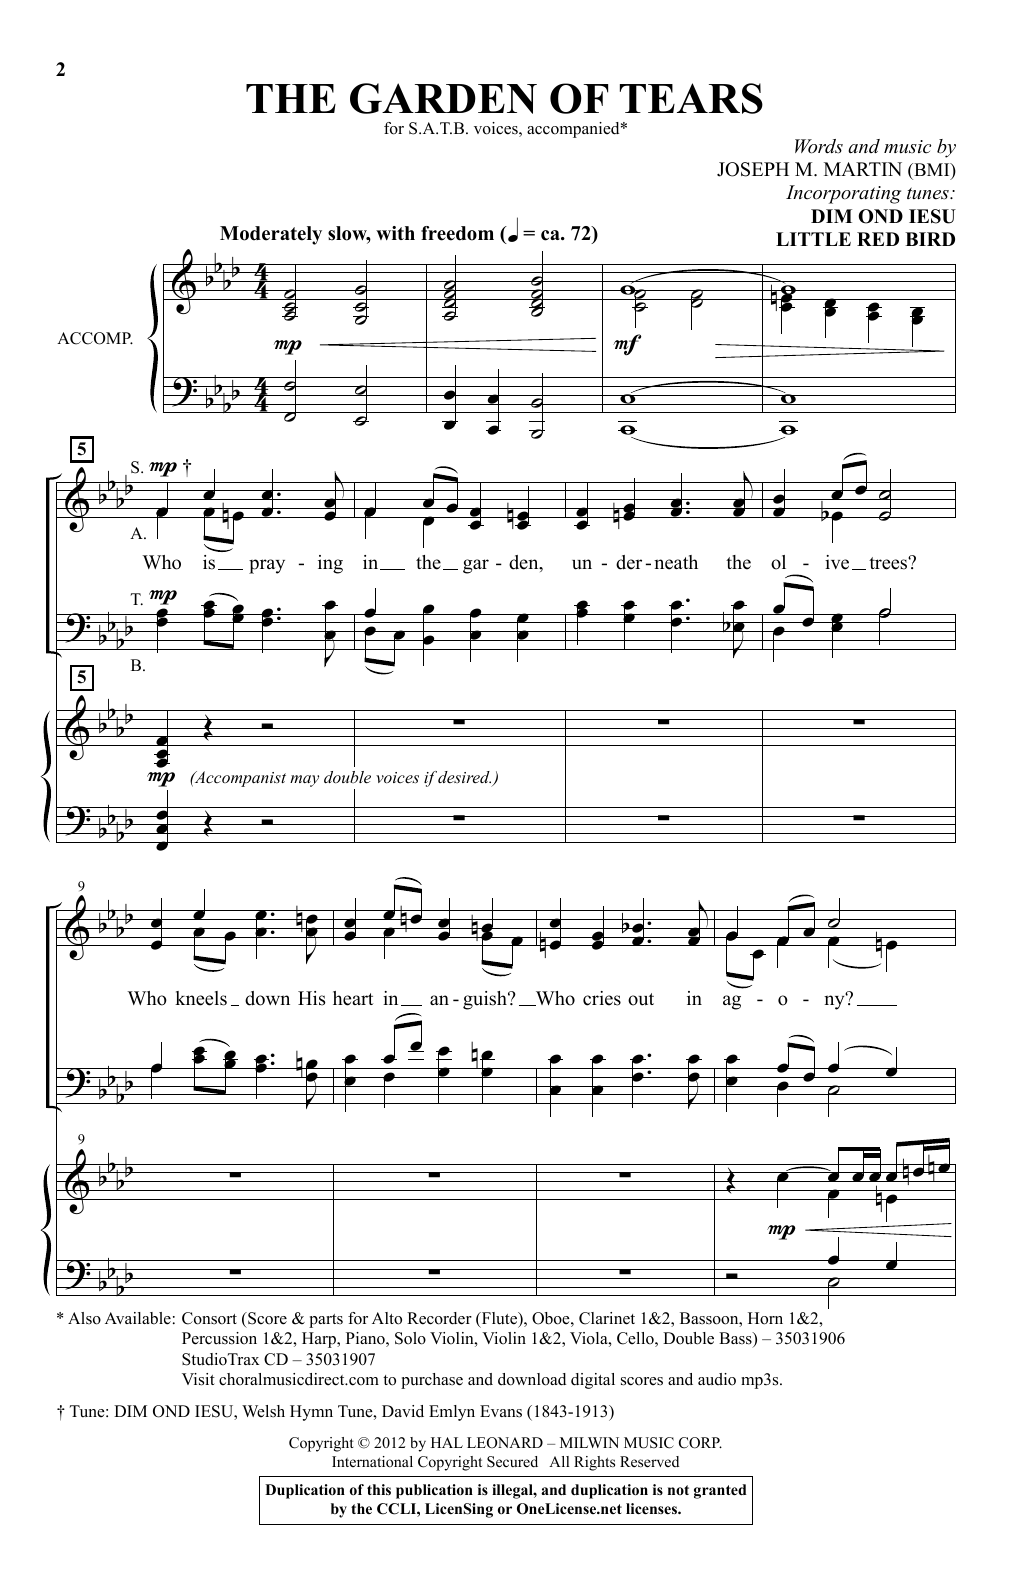 Joseph M. Martin The Garden Of Tears sheet music notes and chords. Download Printable PDF.